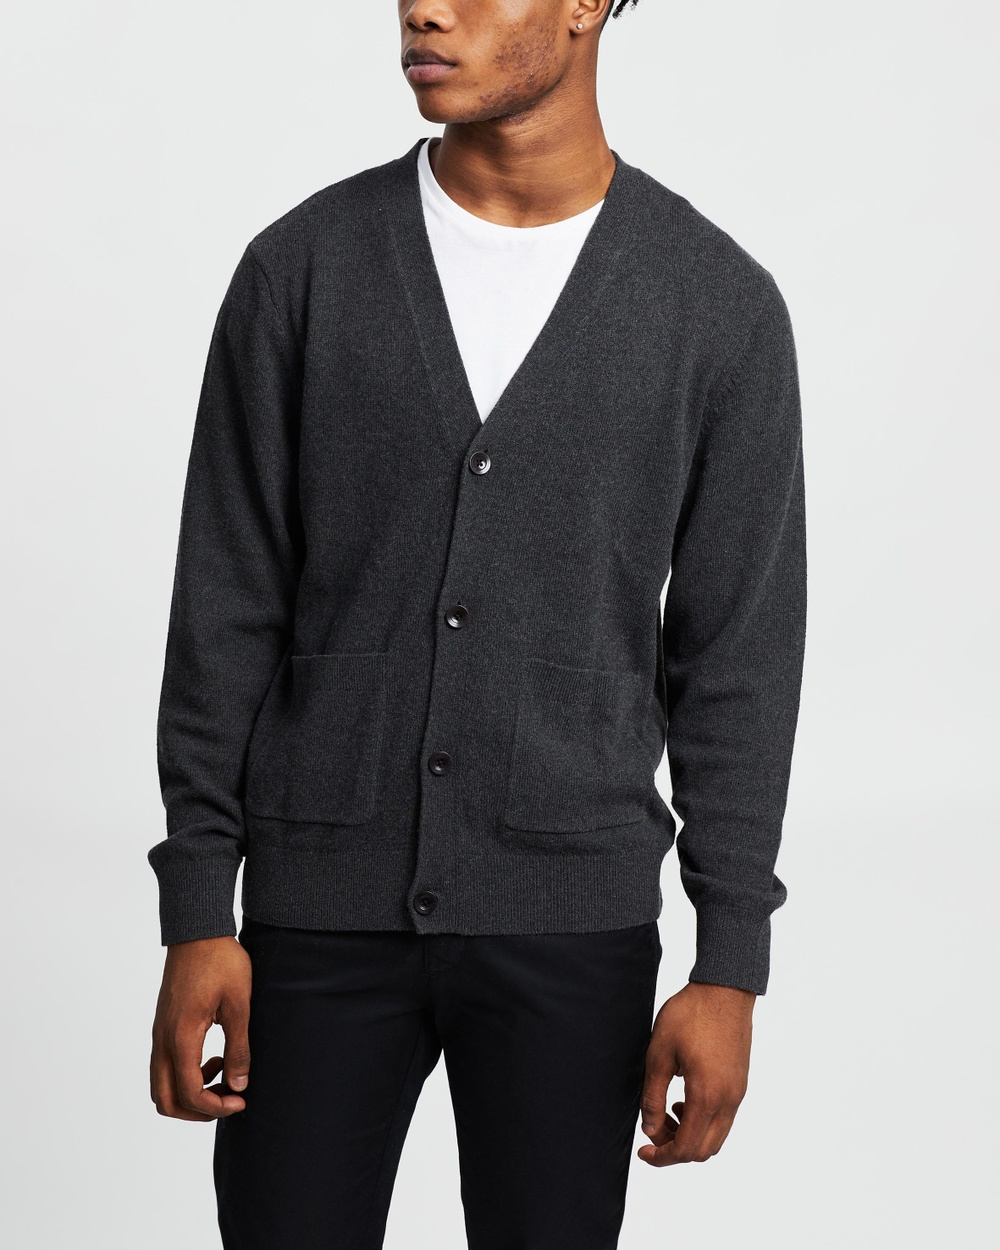 AERE Wool Blend Cardi Jumpers & Cardigans Charcoal